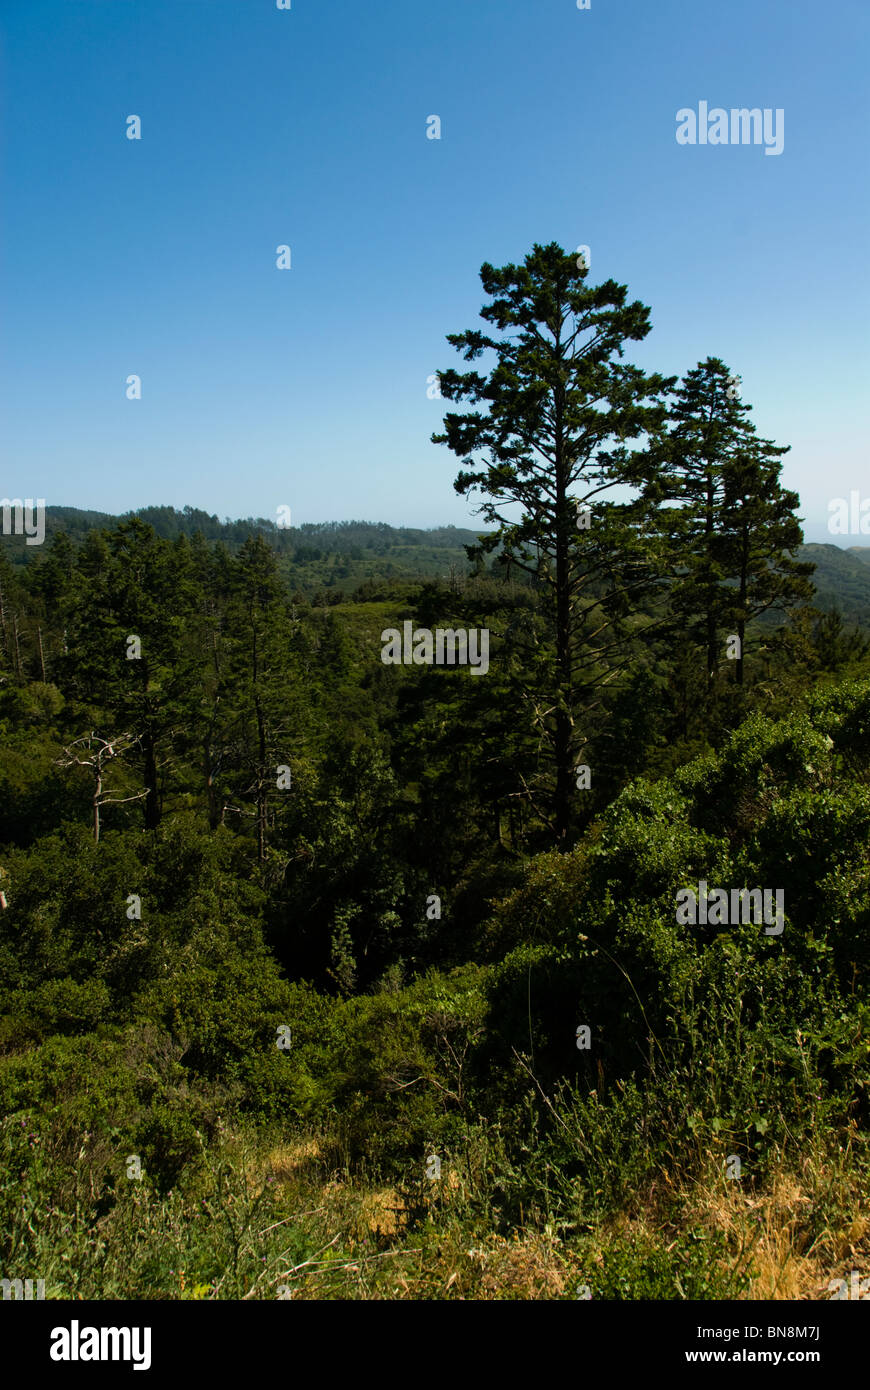 Forest at Point Reyes National Seashore near San Francisco, California. - Stock Image